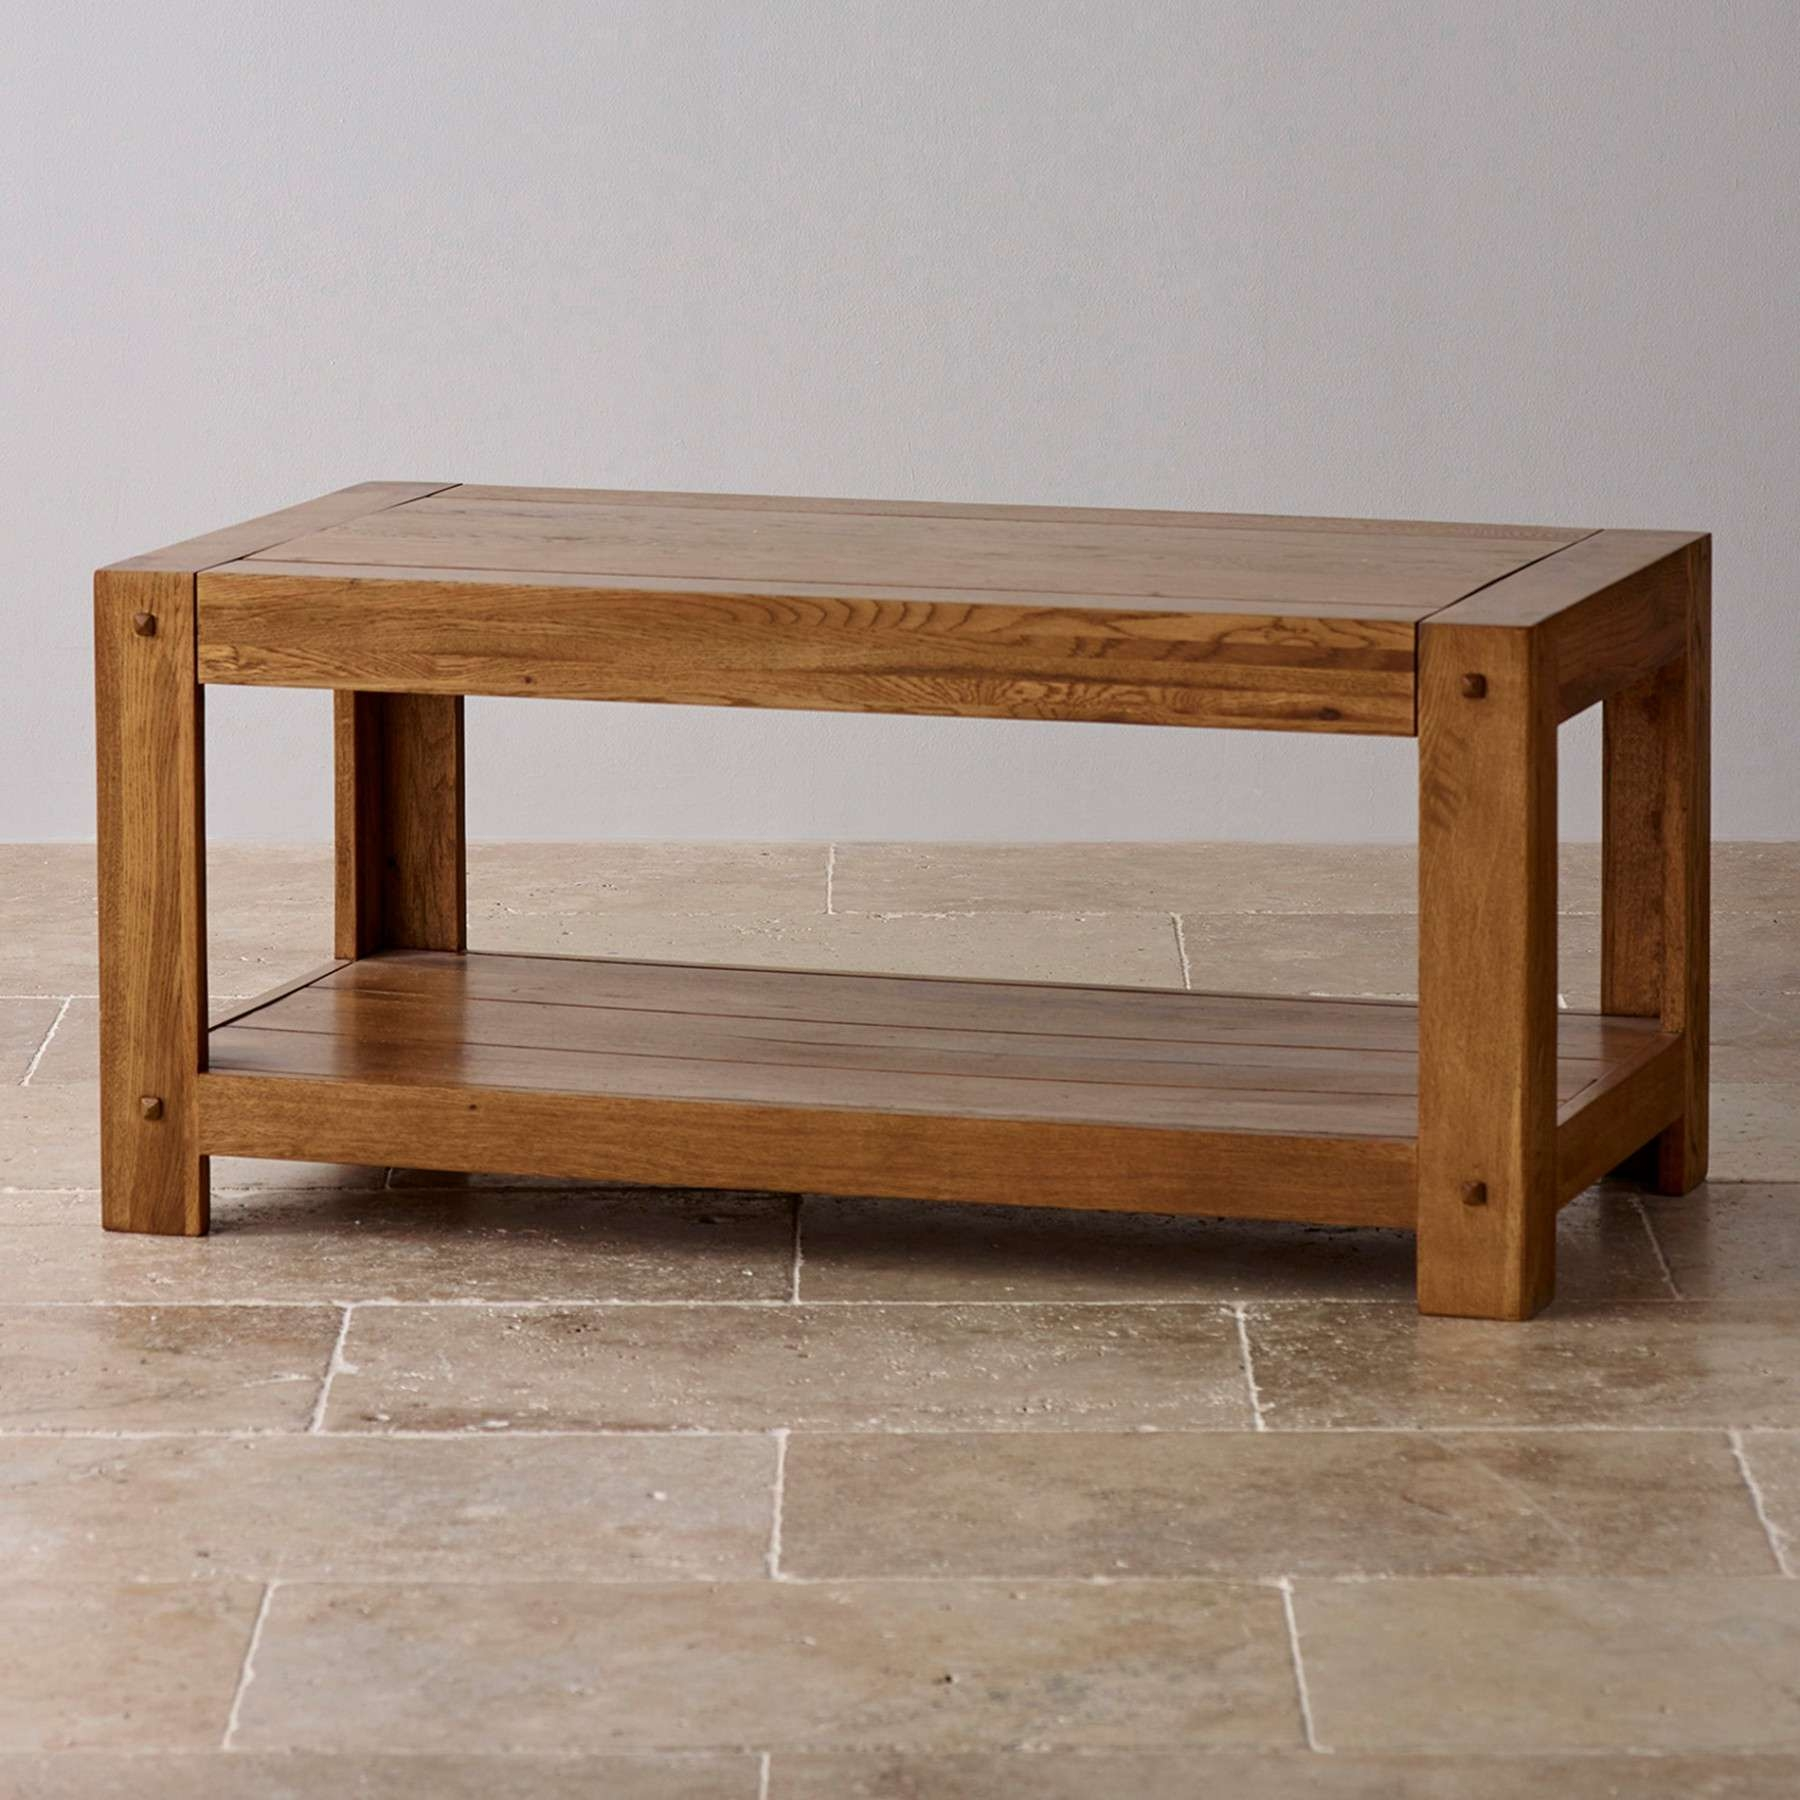 Quercus Rustic Solid Oak Coffee Table Oak Furniture Land Pertaining To Most Popular Solid Oak Coffee Tables (Gallery 3 of 20)